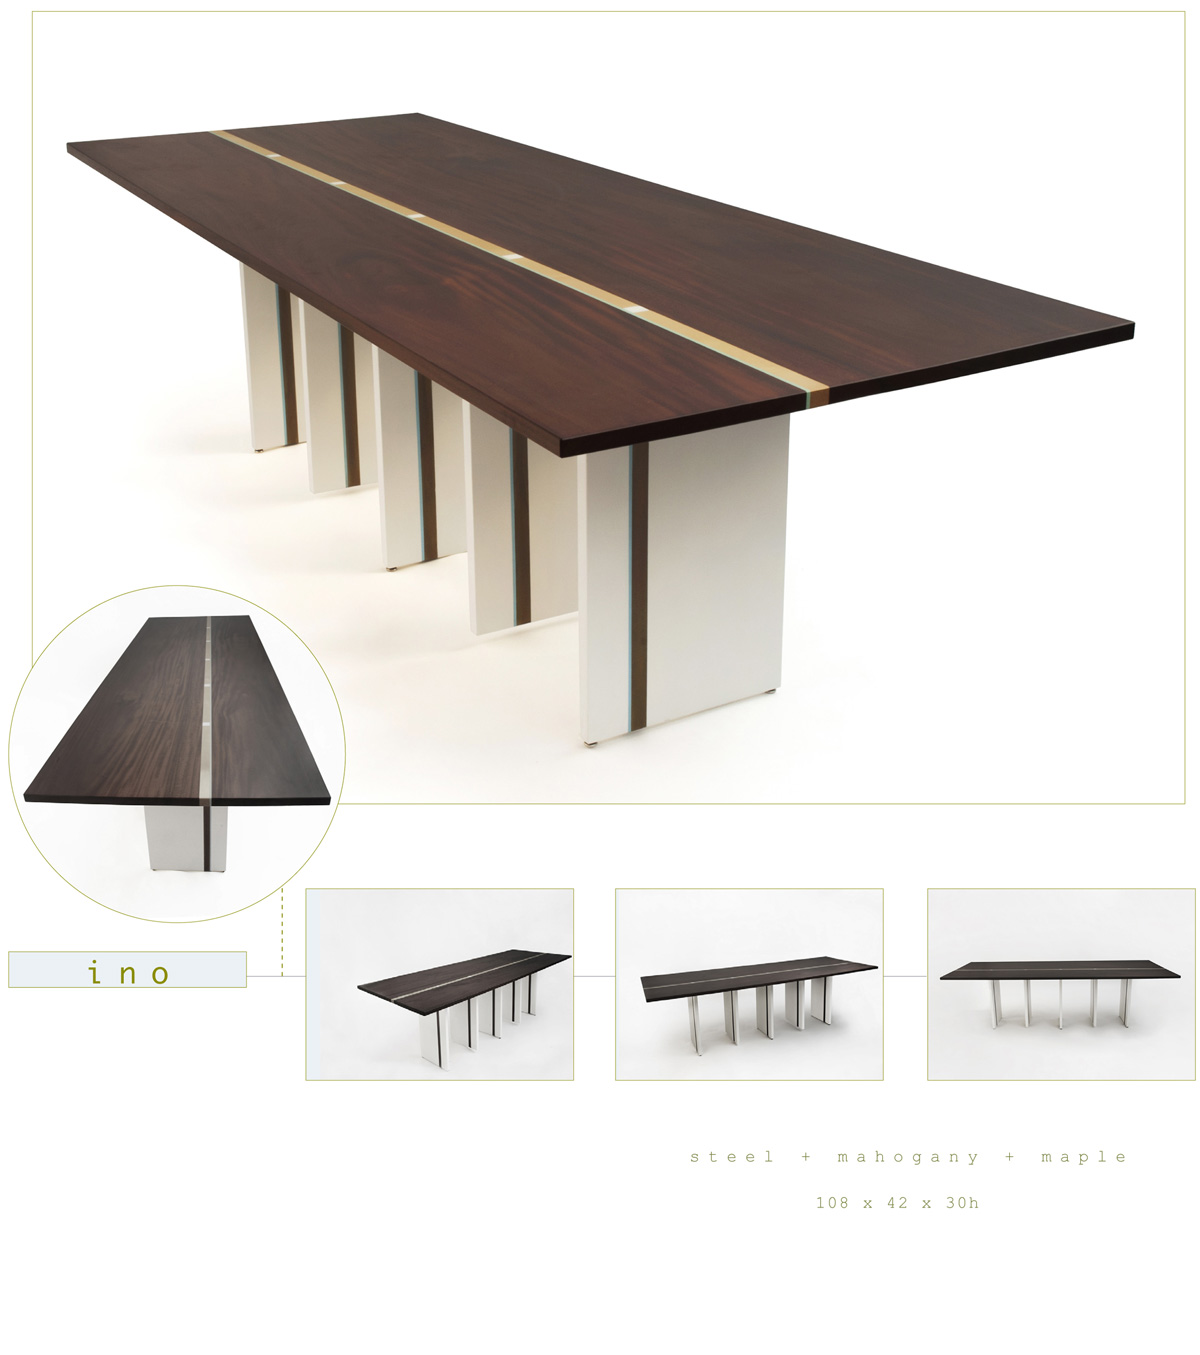 Ino is a contemporary dining table made out of steel and walnut measuring 108 x 42 x 30 inches made by Chad Manley Design.